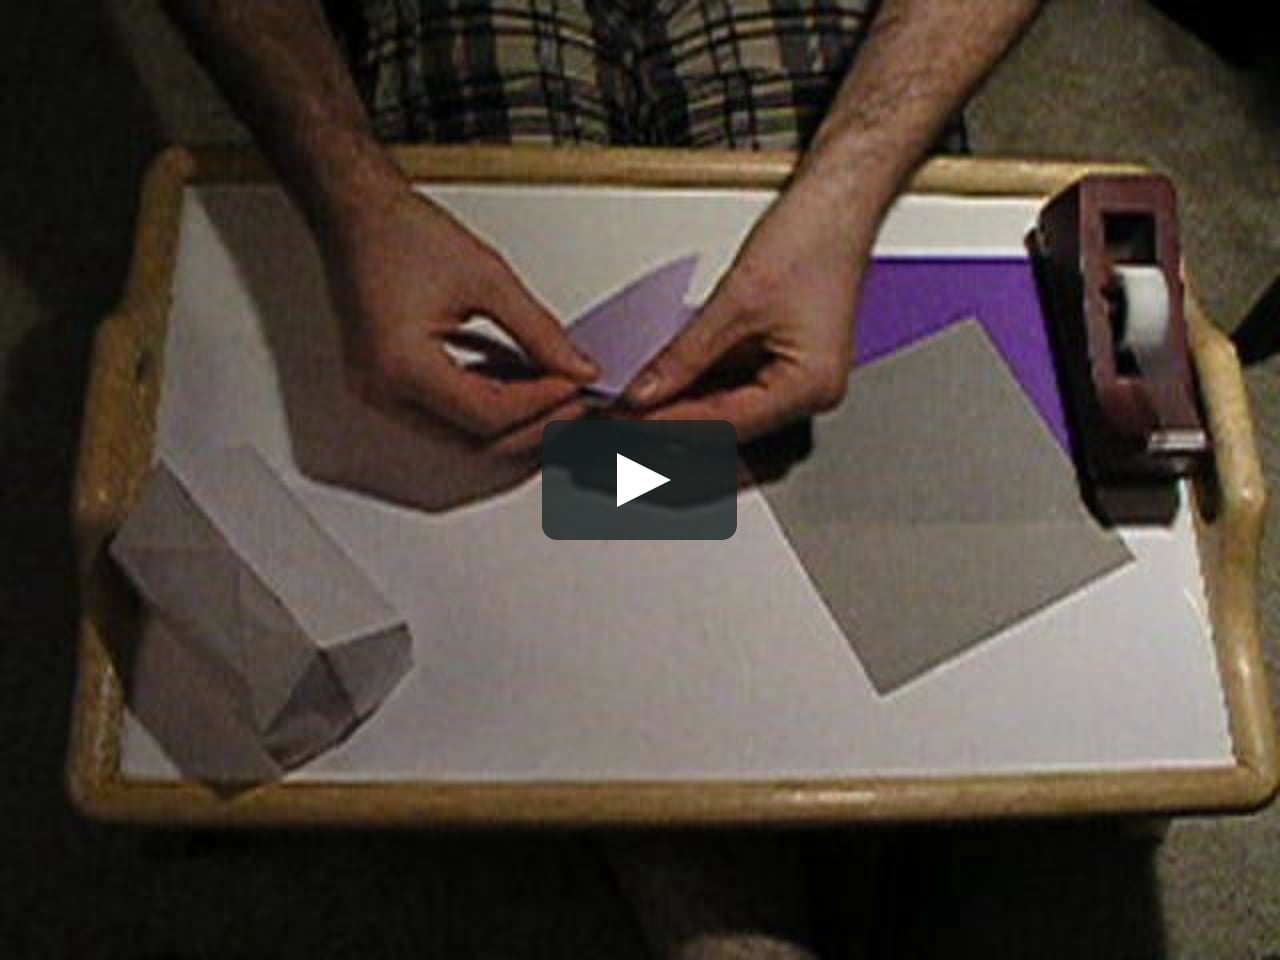 Papercraft Folding a simple 3D origami house